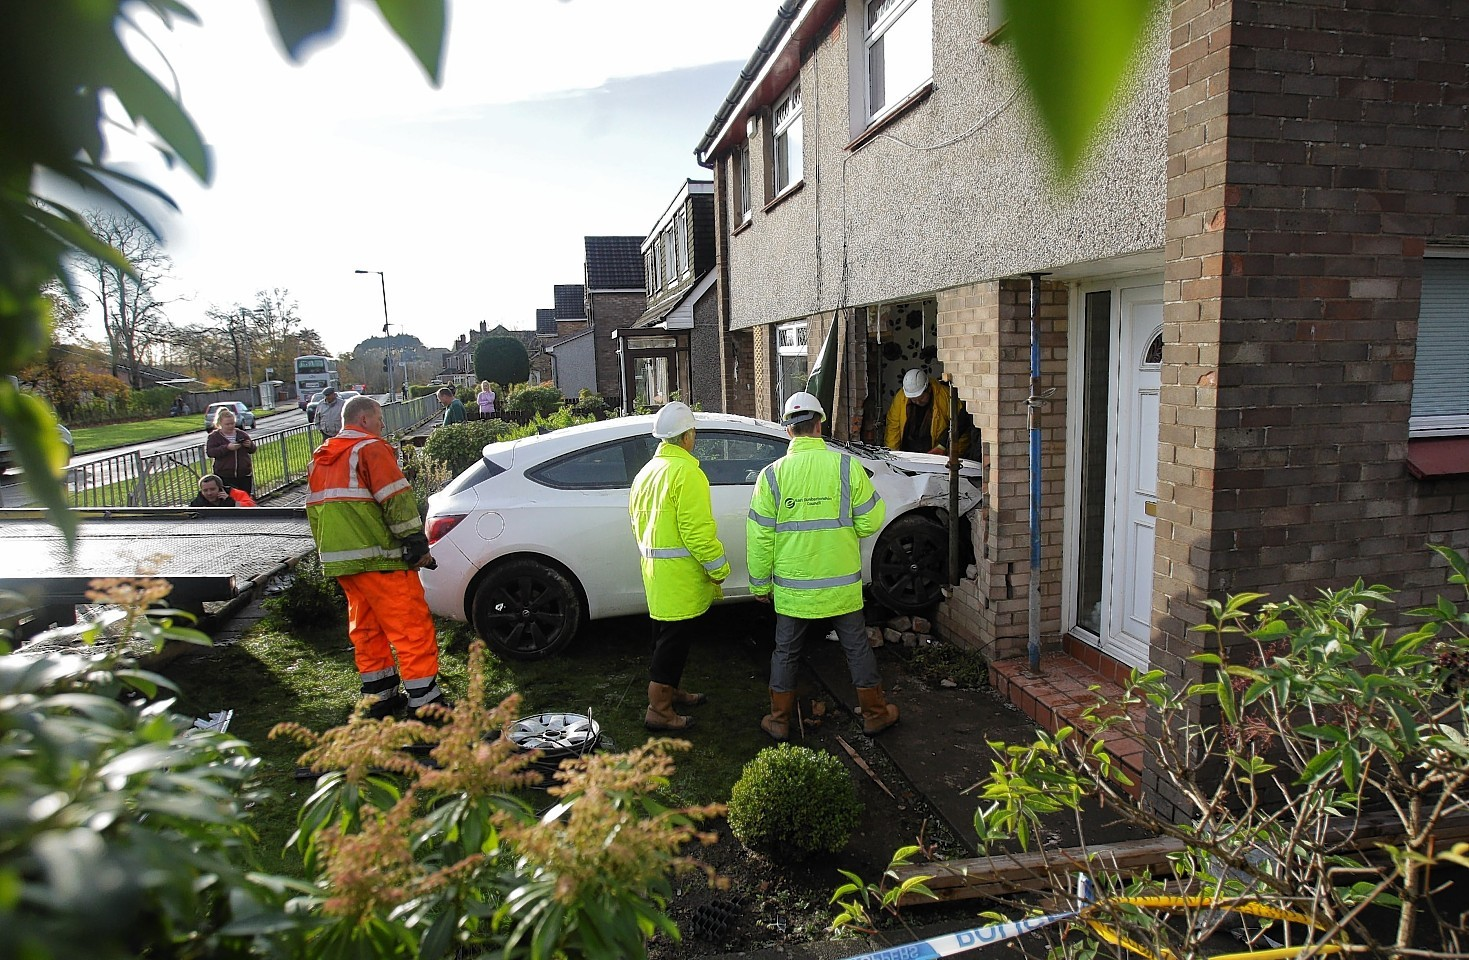 The car crashed straight through the wall of the house